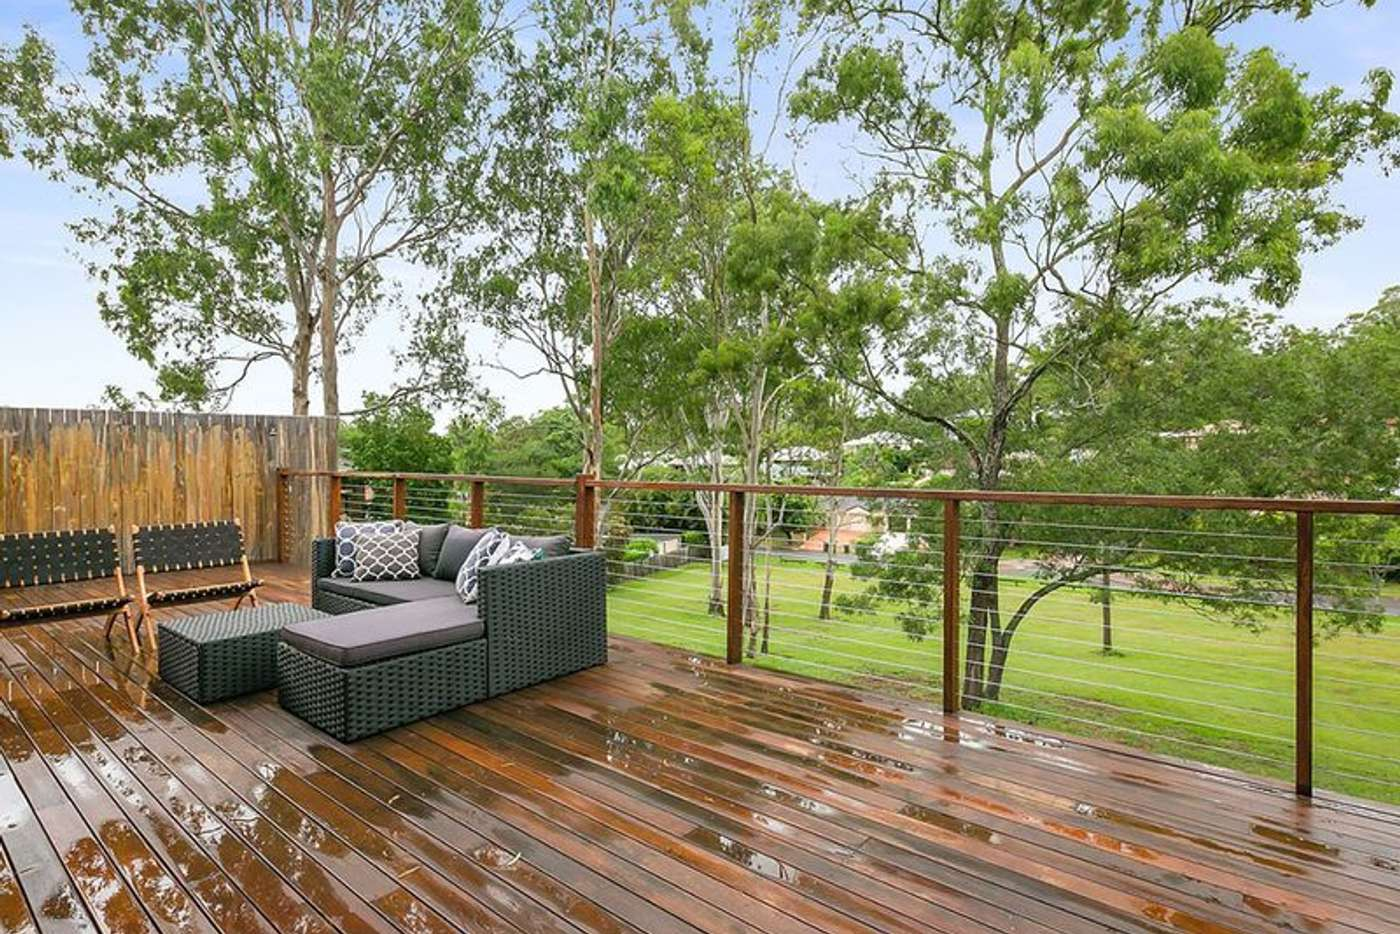 Main view of Homely house listing, 23 Parkway Place, Kenmore QLD 4069